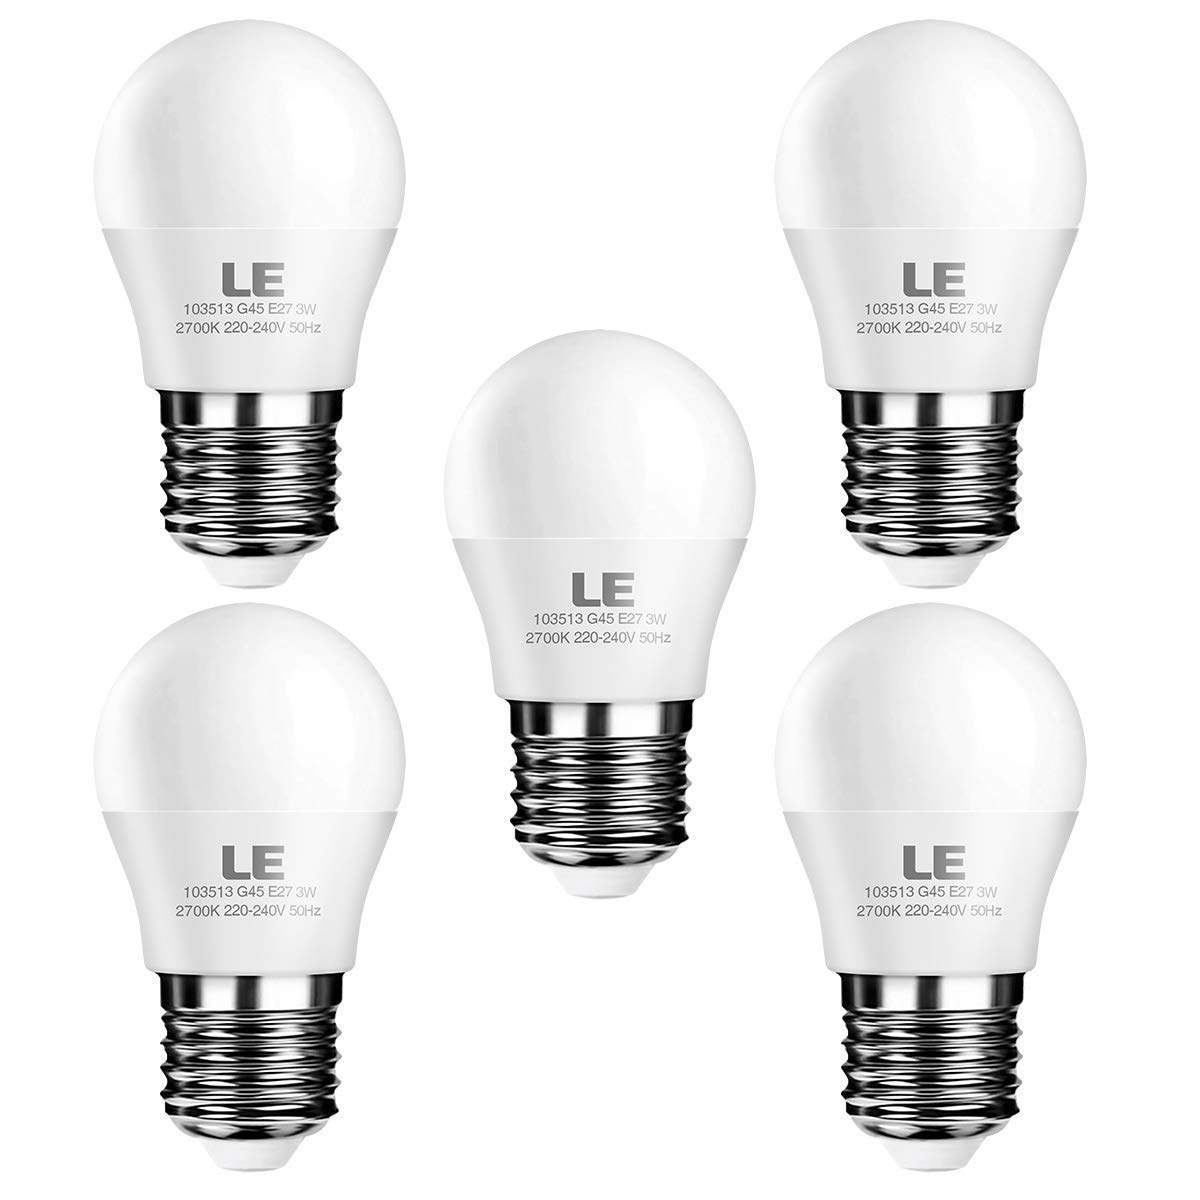 Ampoule 25wNon De Led E27 Lighting Dimmable 160°Equivalent Le Ampoules Diffusion À Ever Incandescente 3w240lmAngle MpqUSVGz